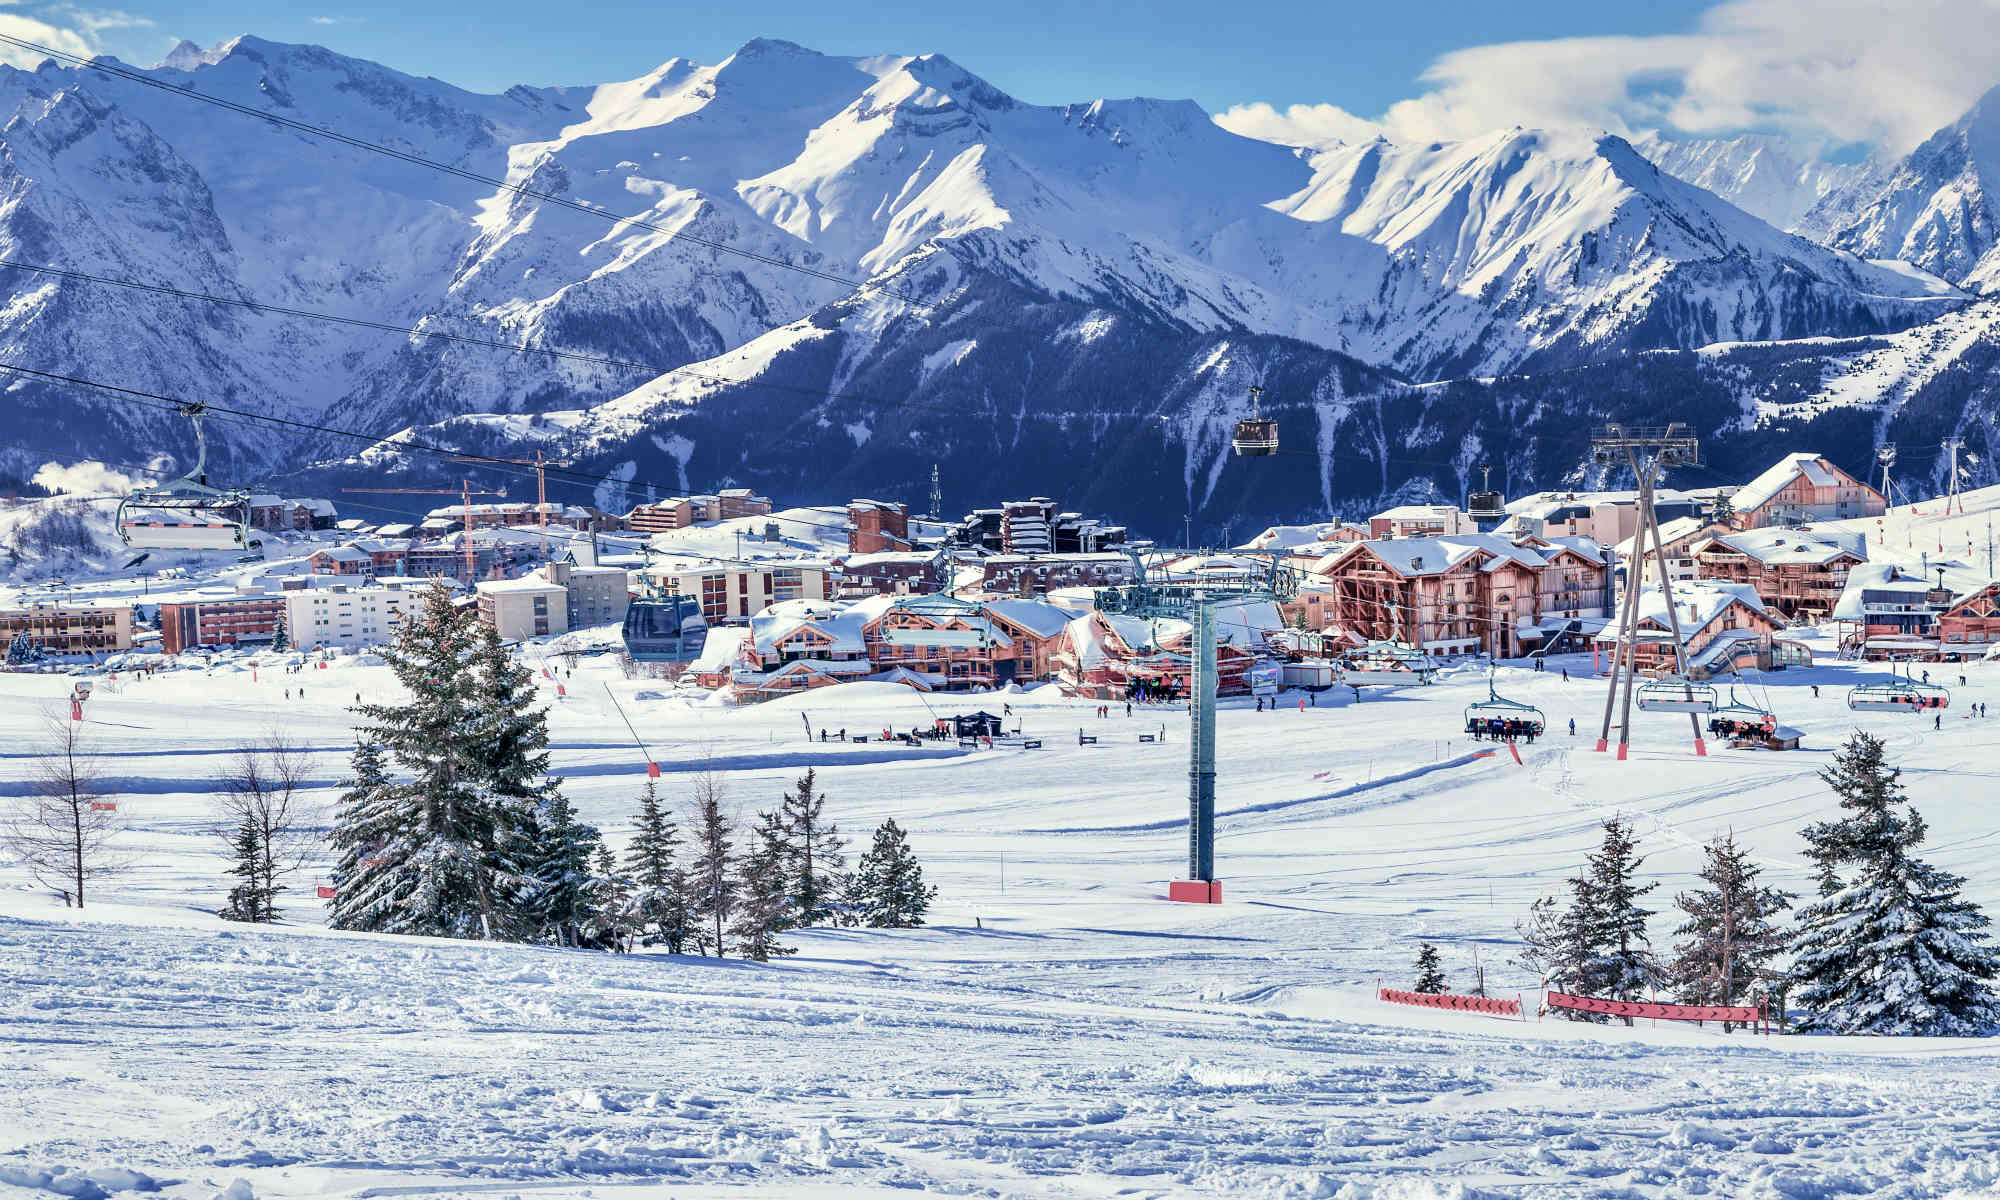 Stunning view of the French skiing resort Alpe d'Huez.